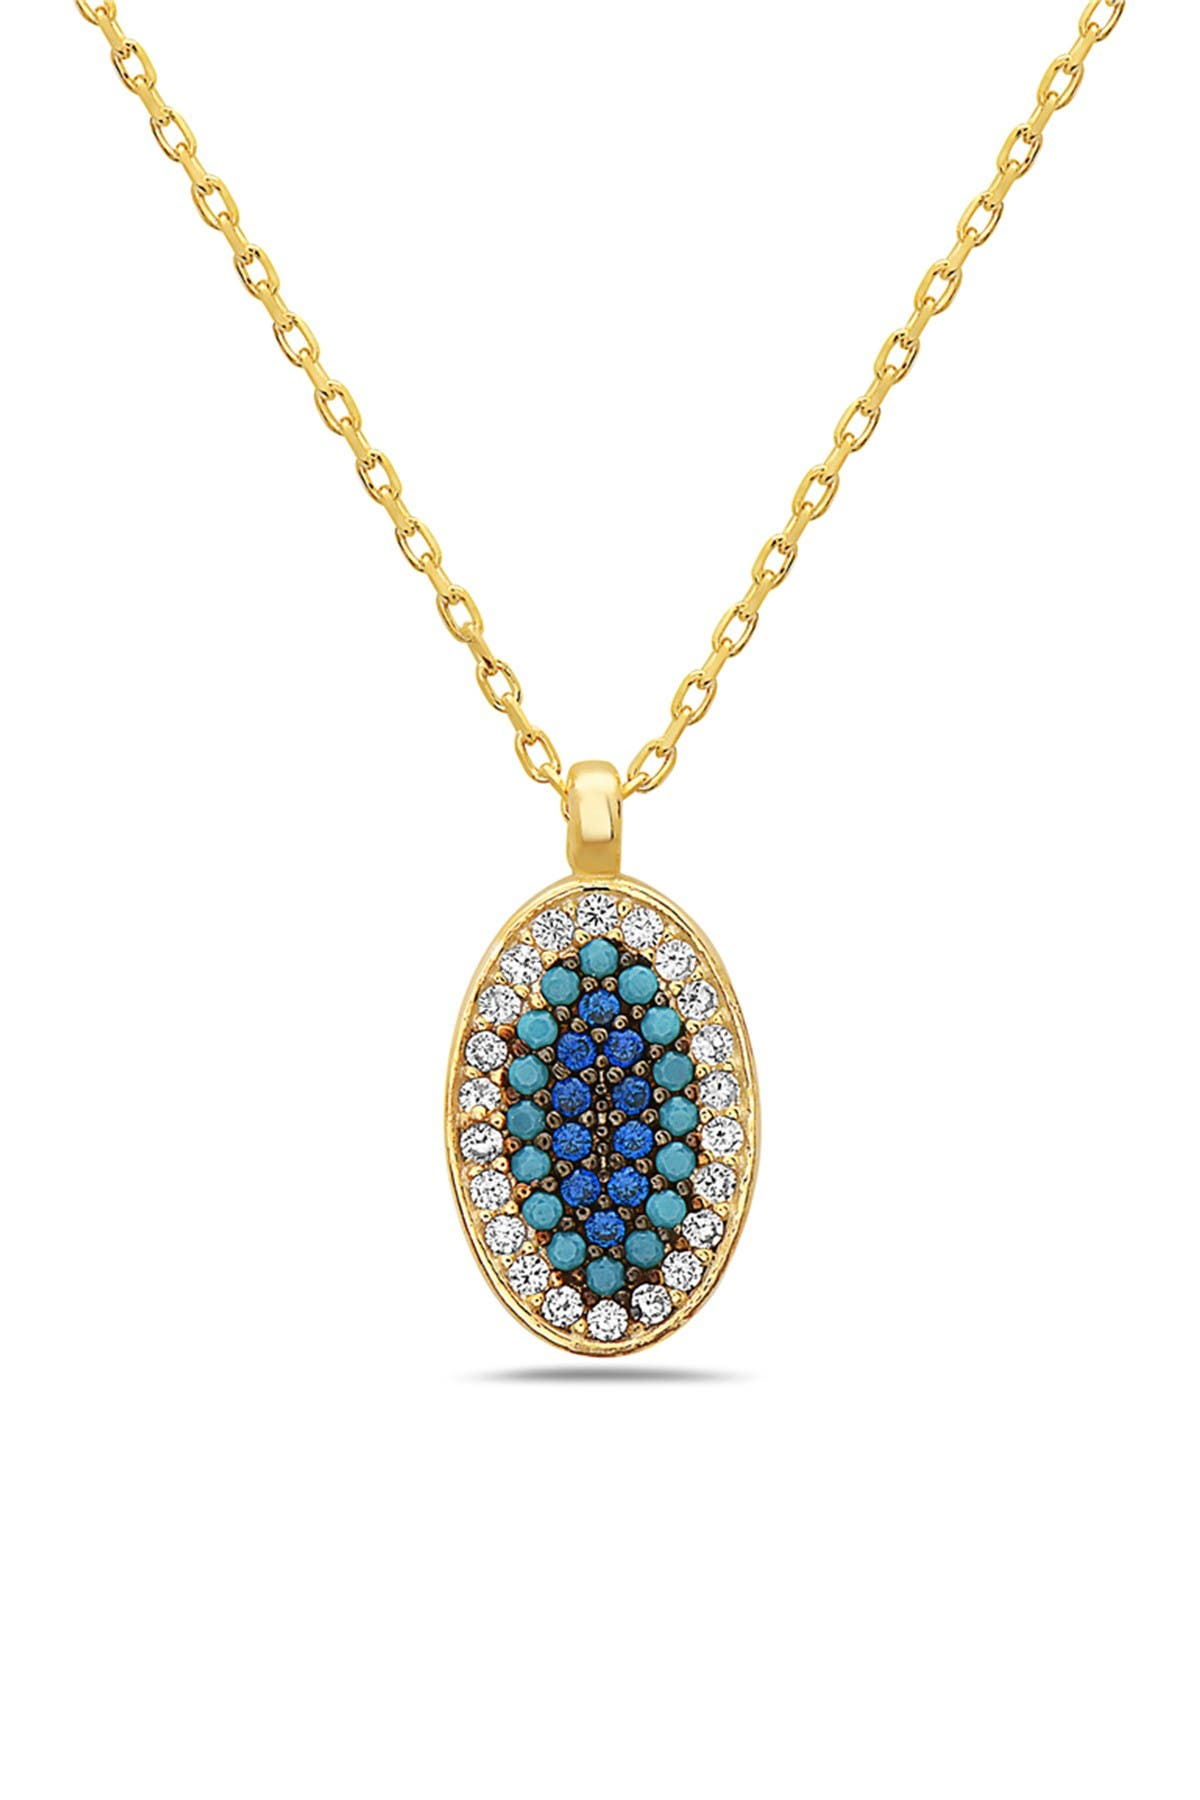 Image of Best Silver Inc. 18K Gold Plated Sterling Silver Crystal Oval Ombre Blue Evil Eye Necklace